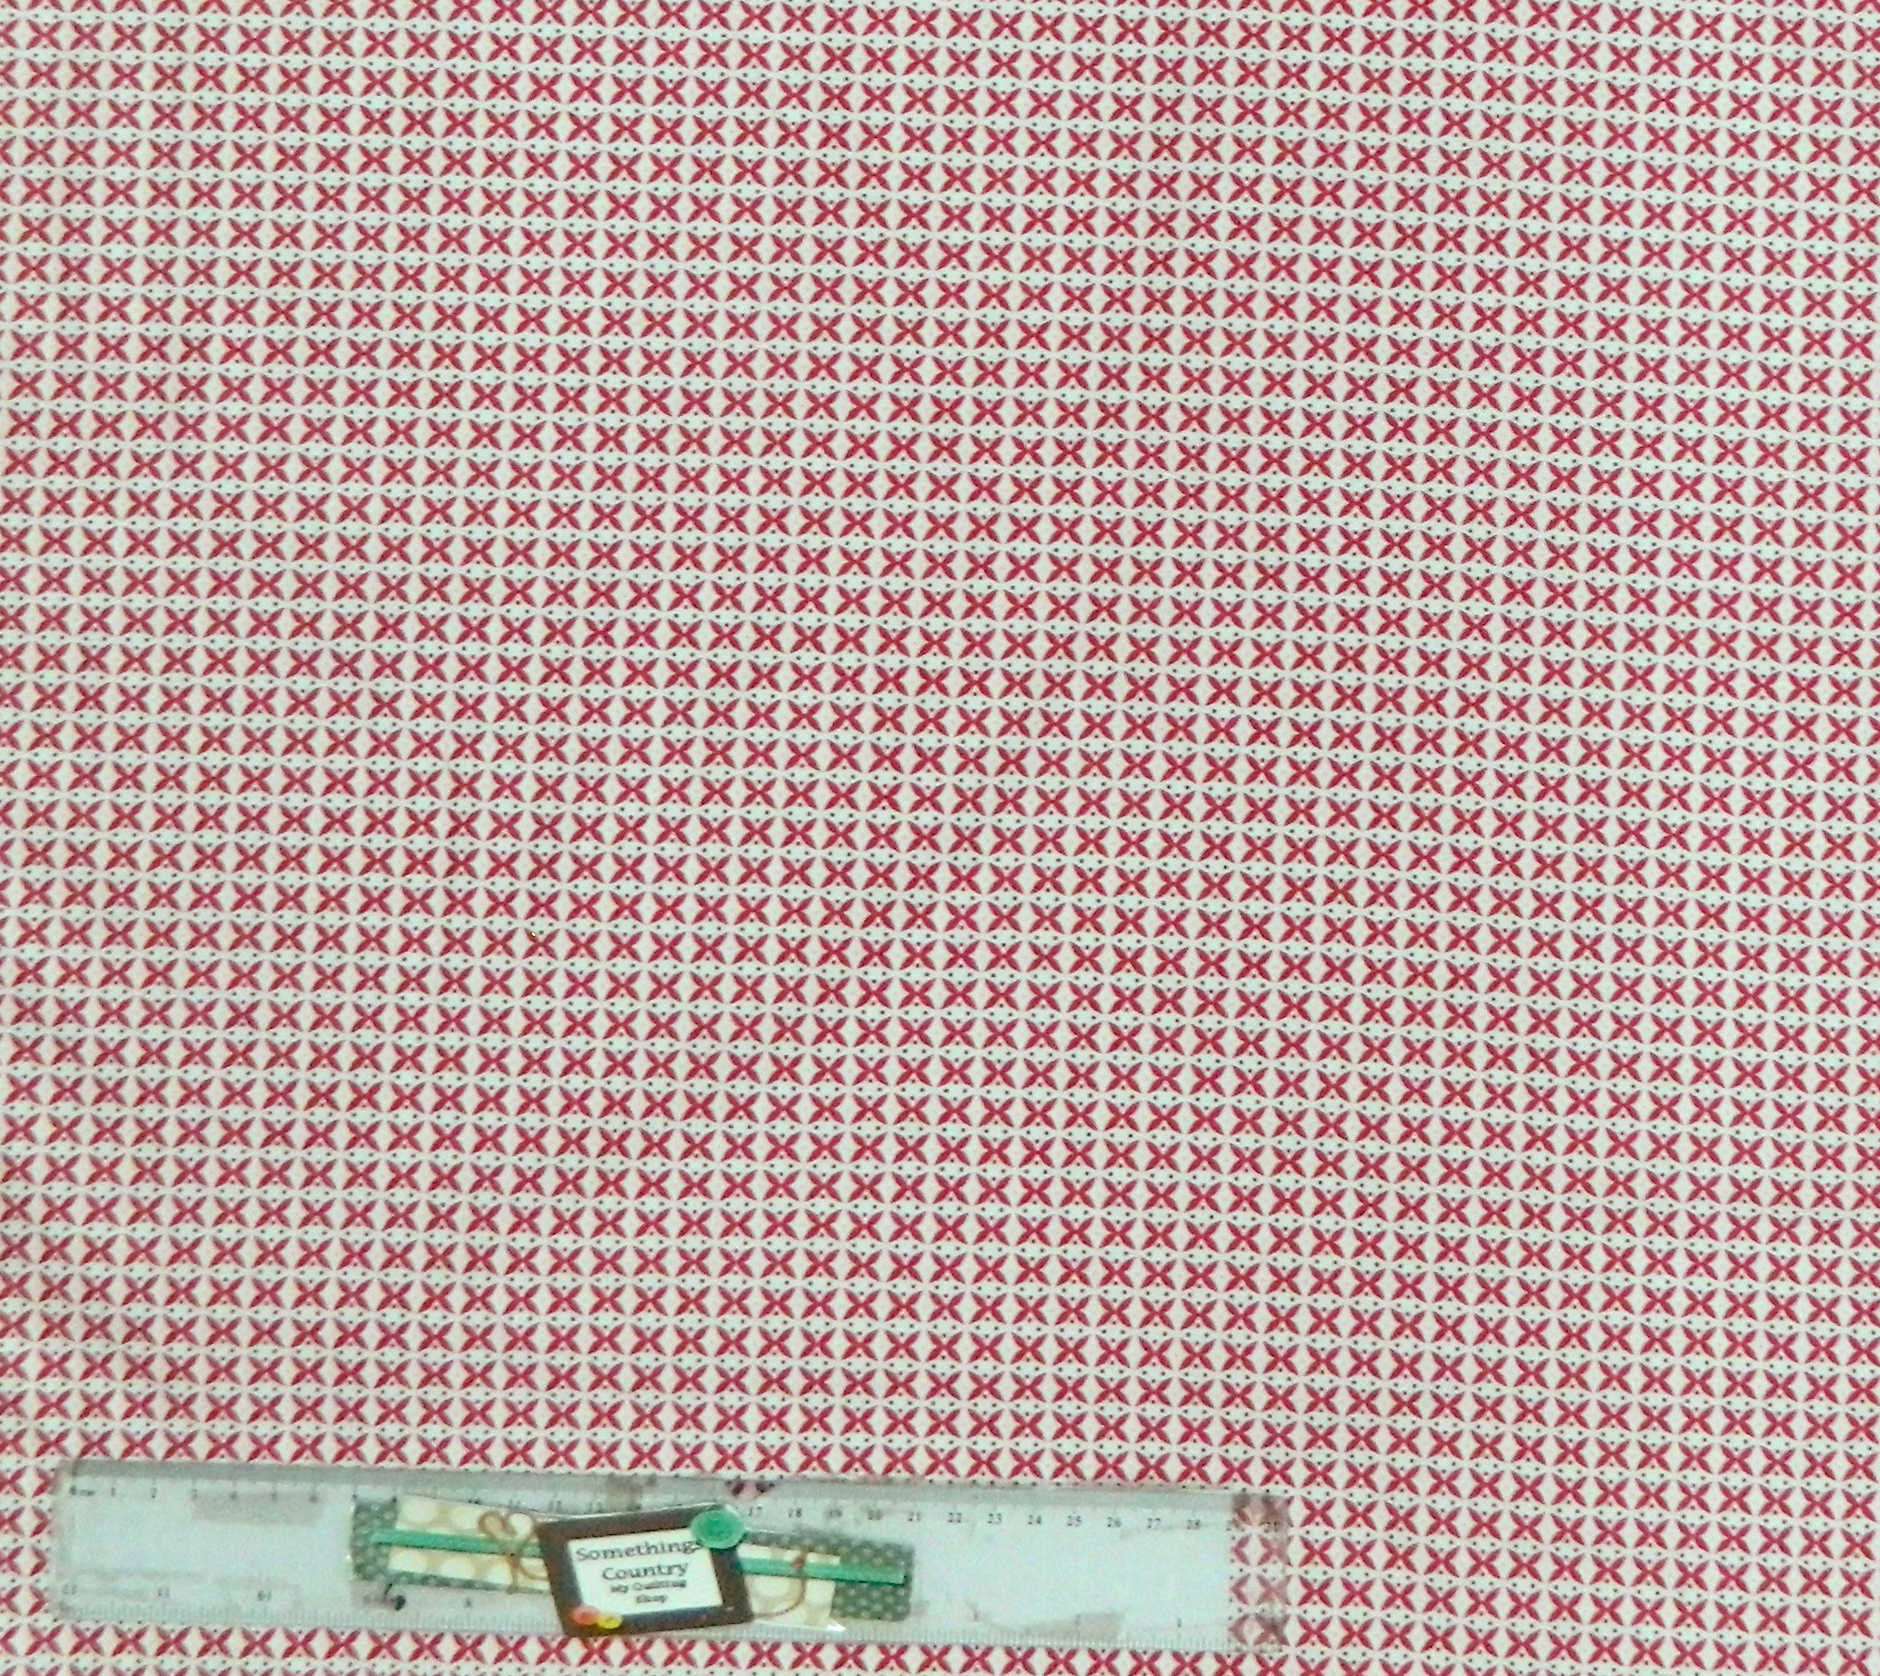 Quilting Patchwork Sewing Cotton Fabric RED CROSSES ON WHITE Wider 150x50cm New